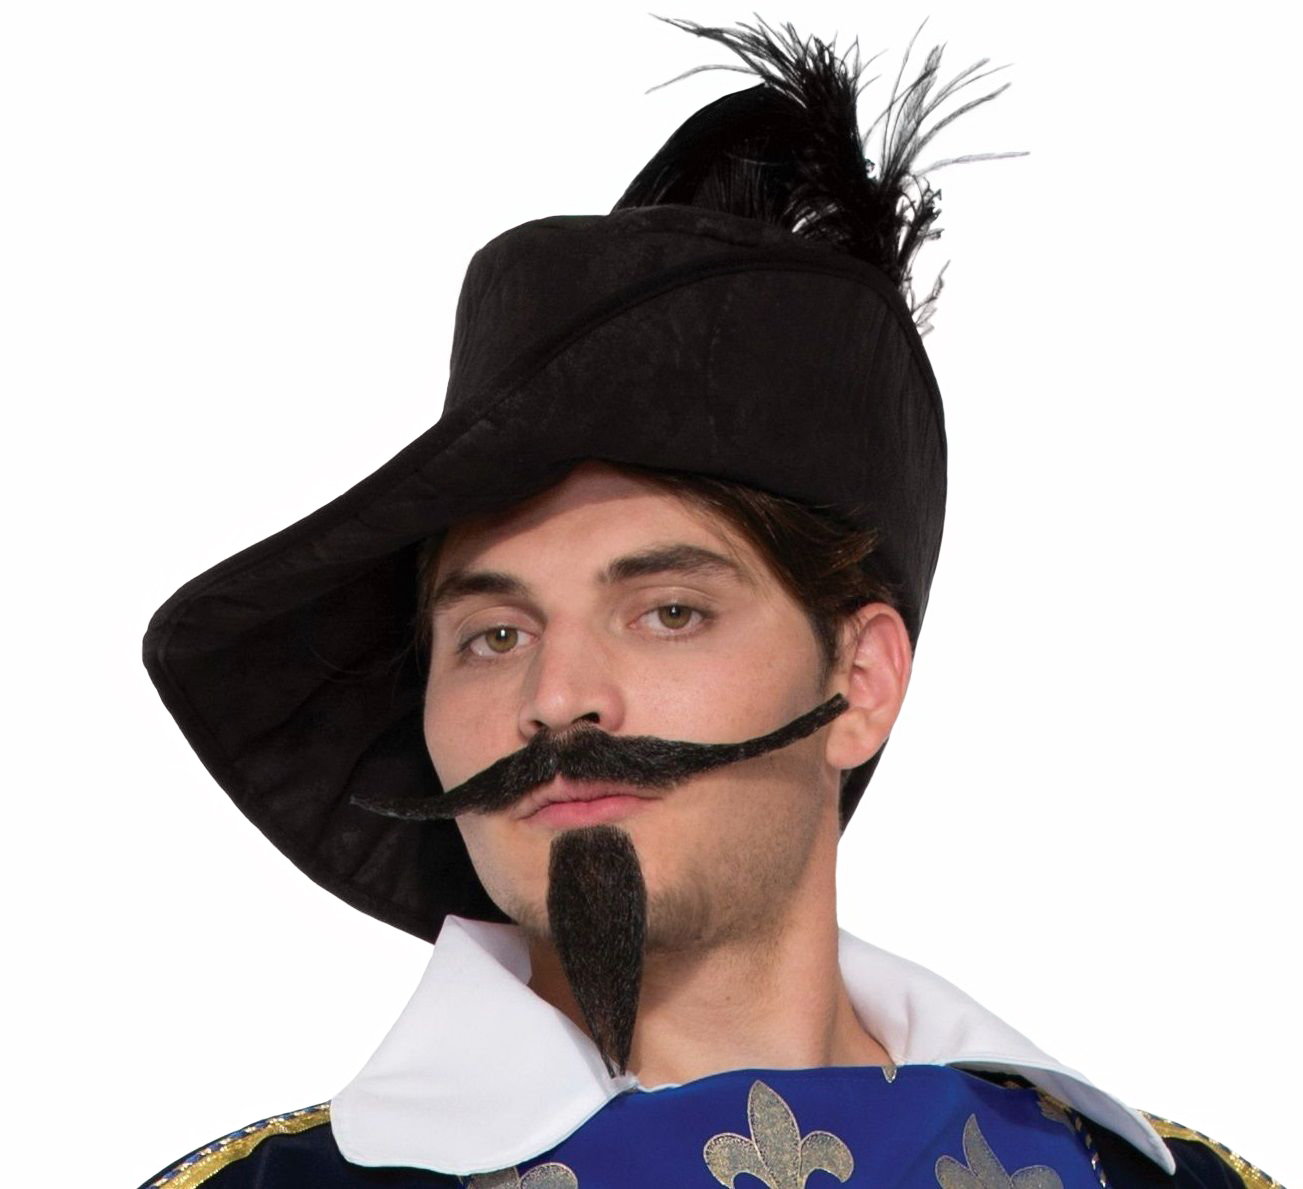 fake beard and mustache musketeer facial hair faux halloween costume